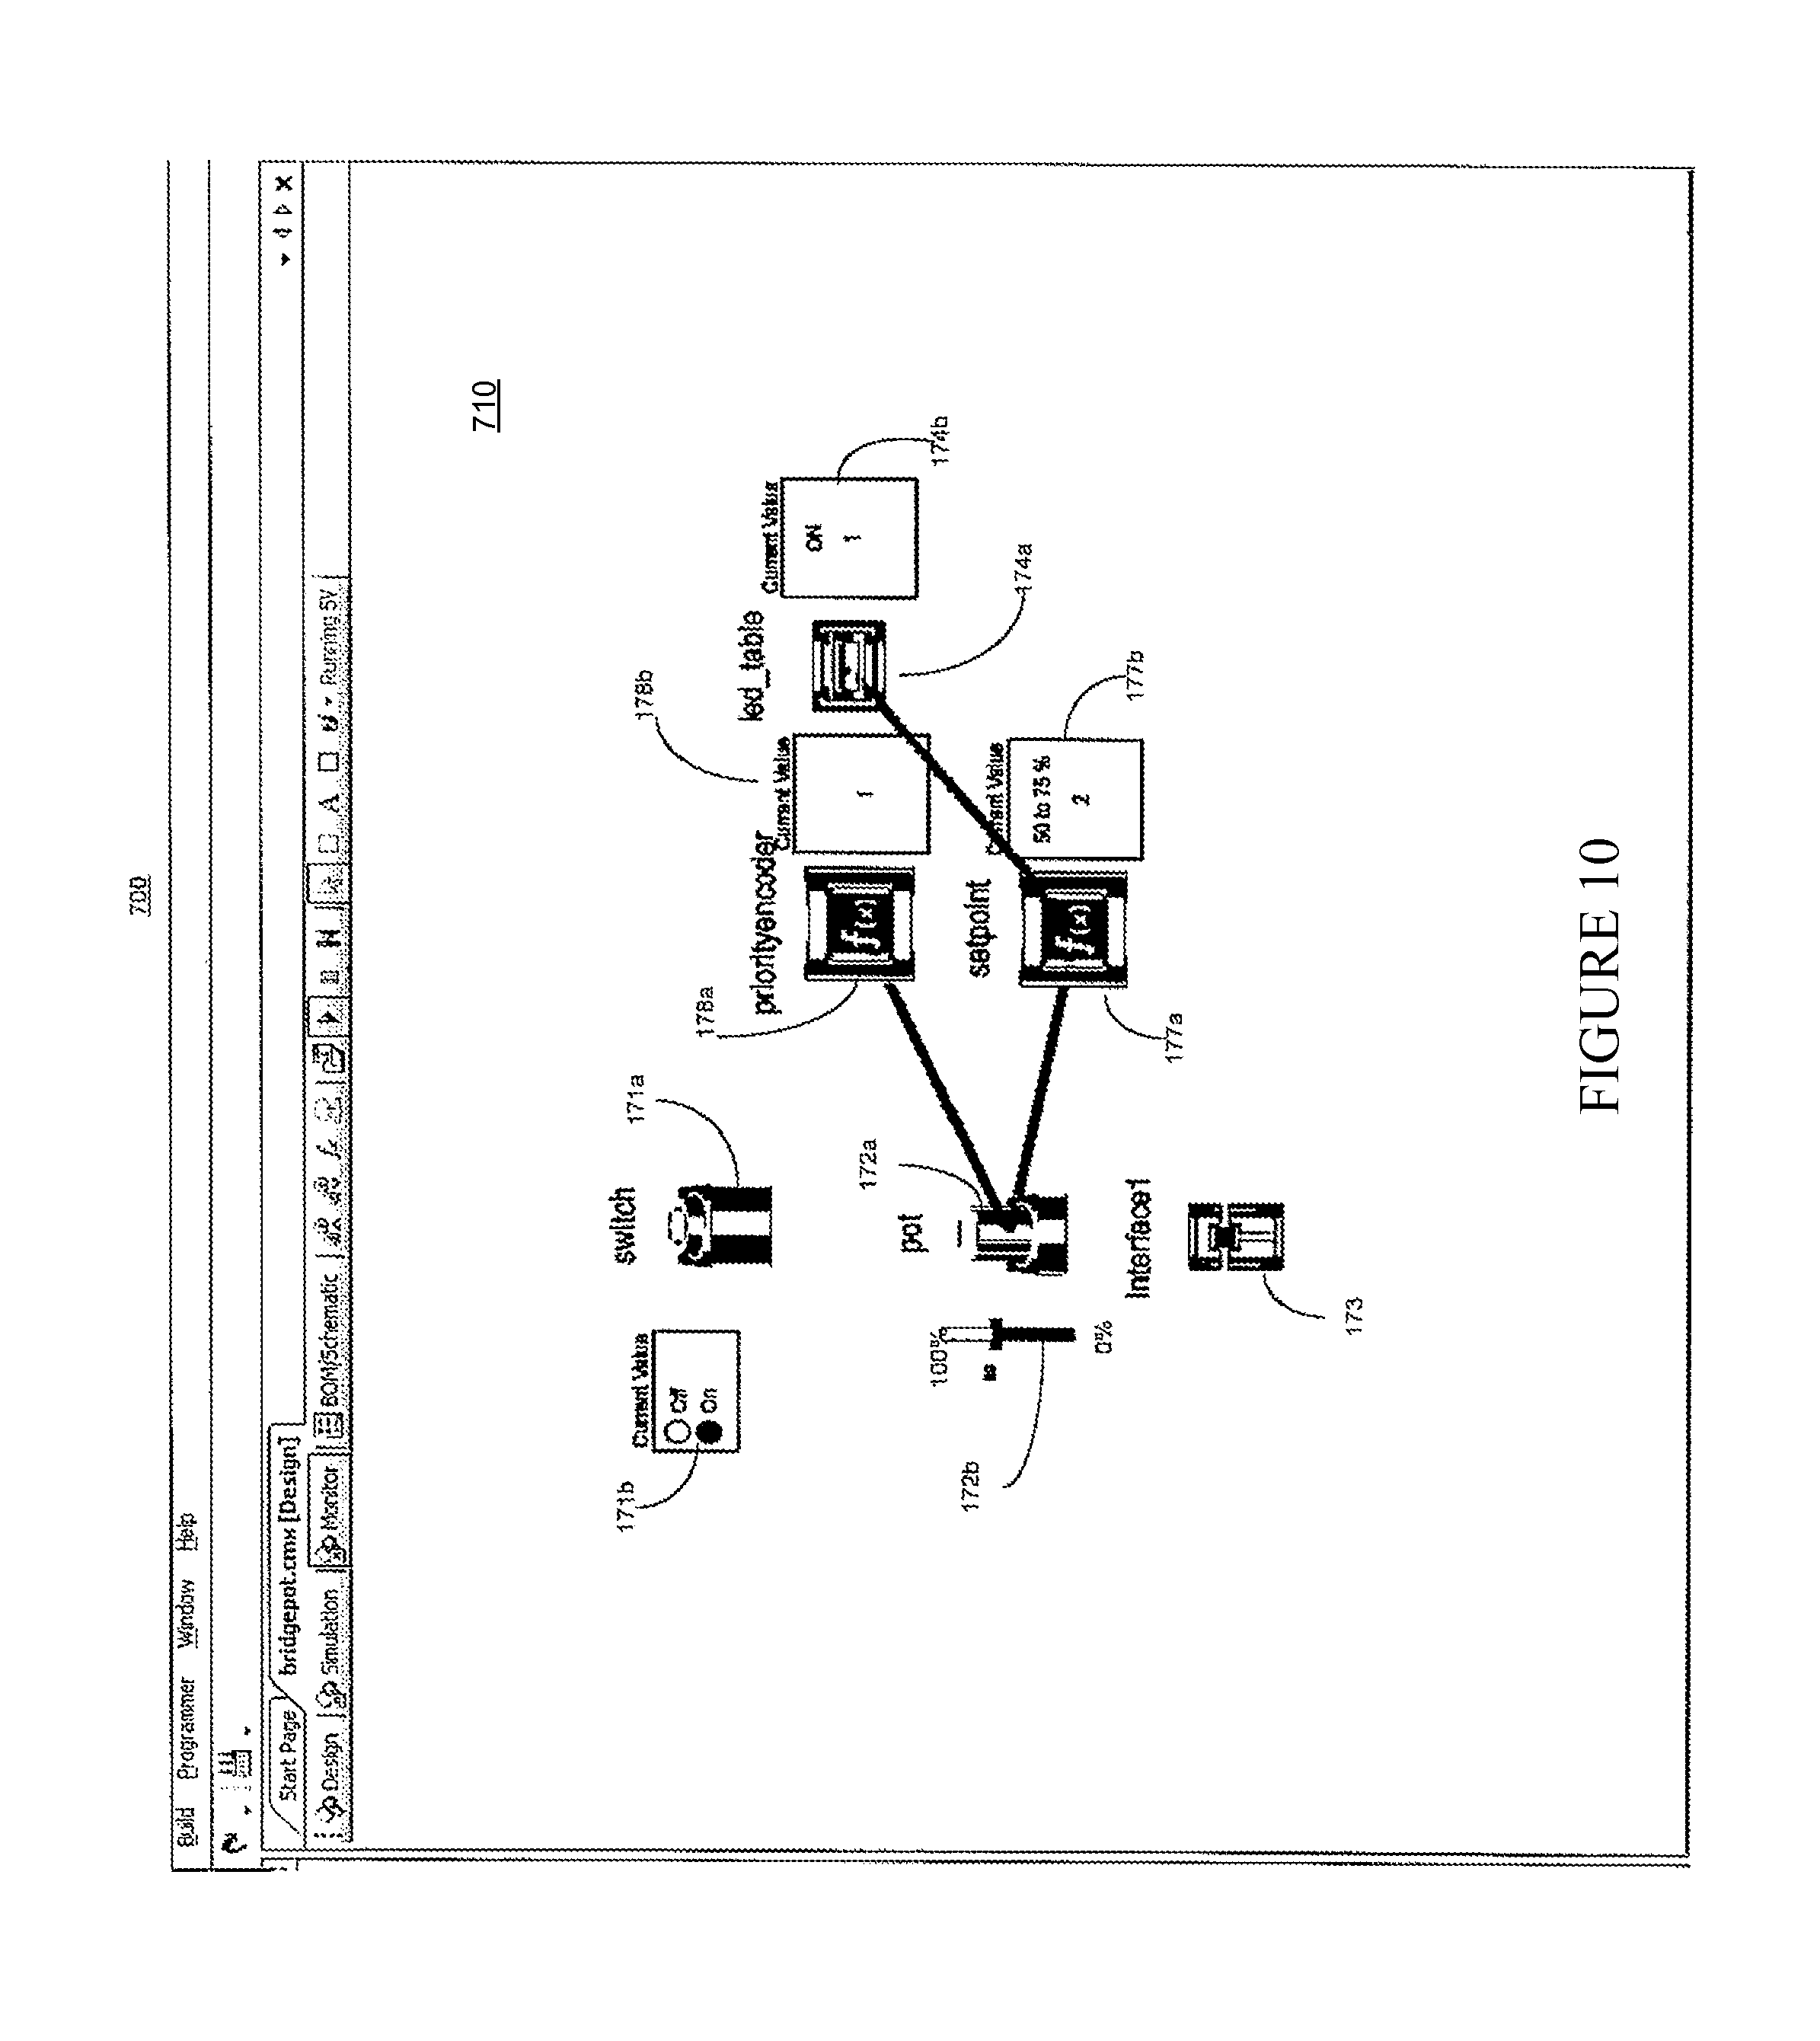 Patent Us 9720805 B1 Signal Isolated Amplifier Circuit Diagram With 3656 0 Petitions